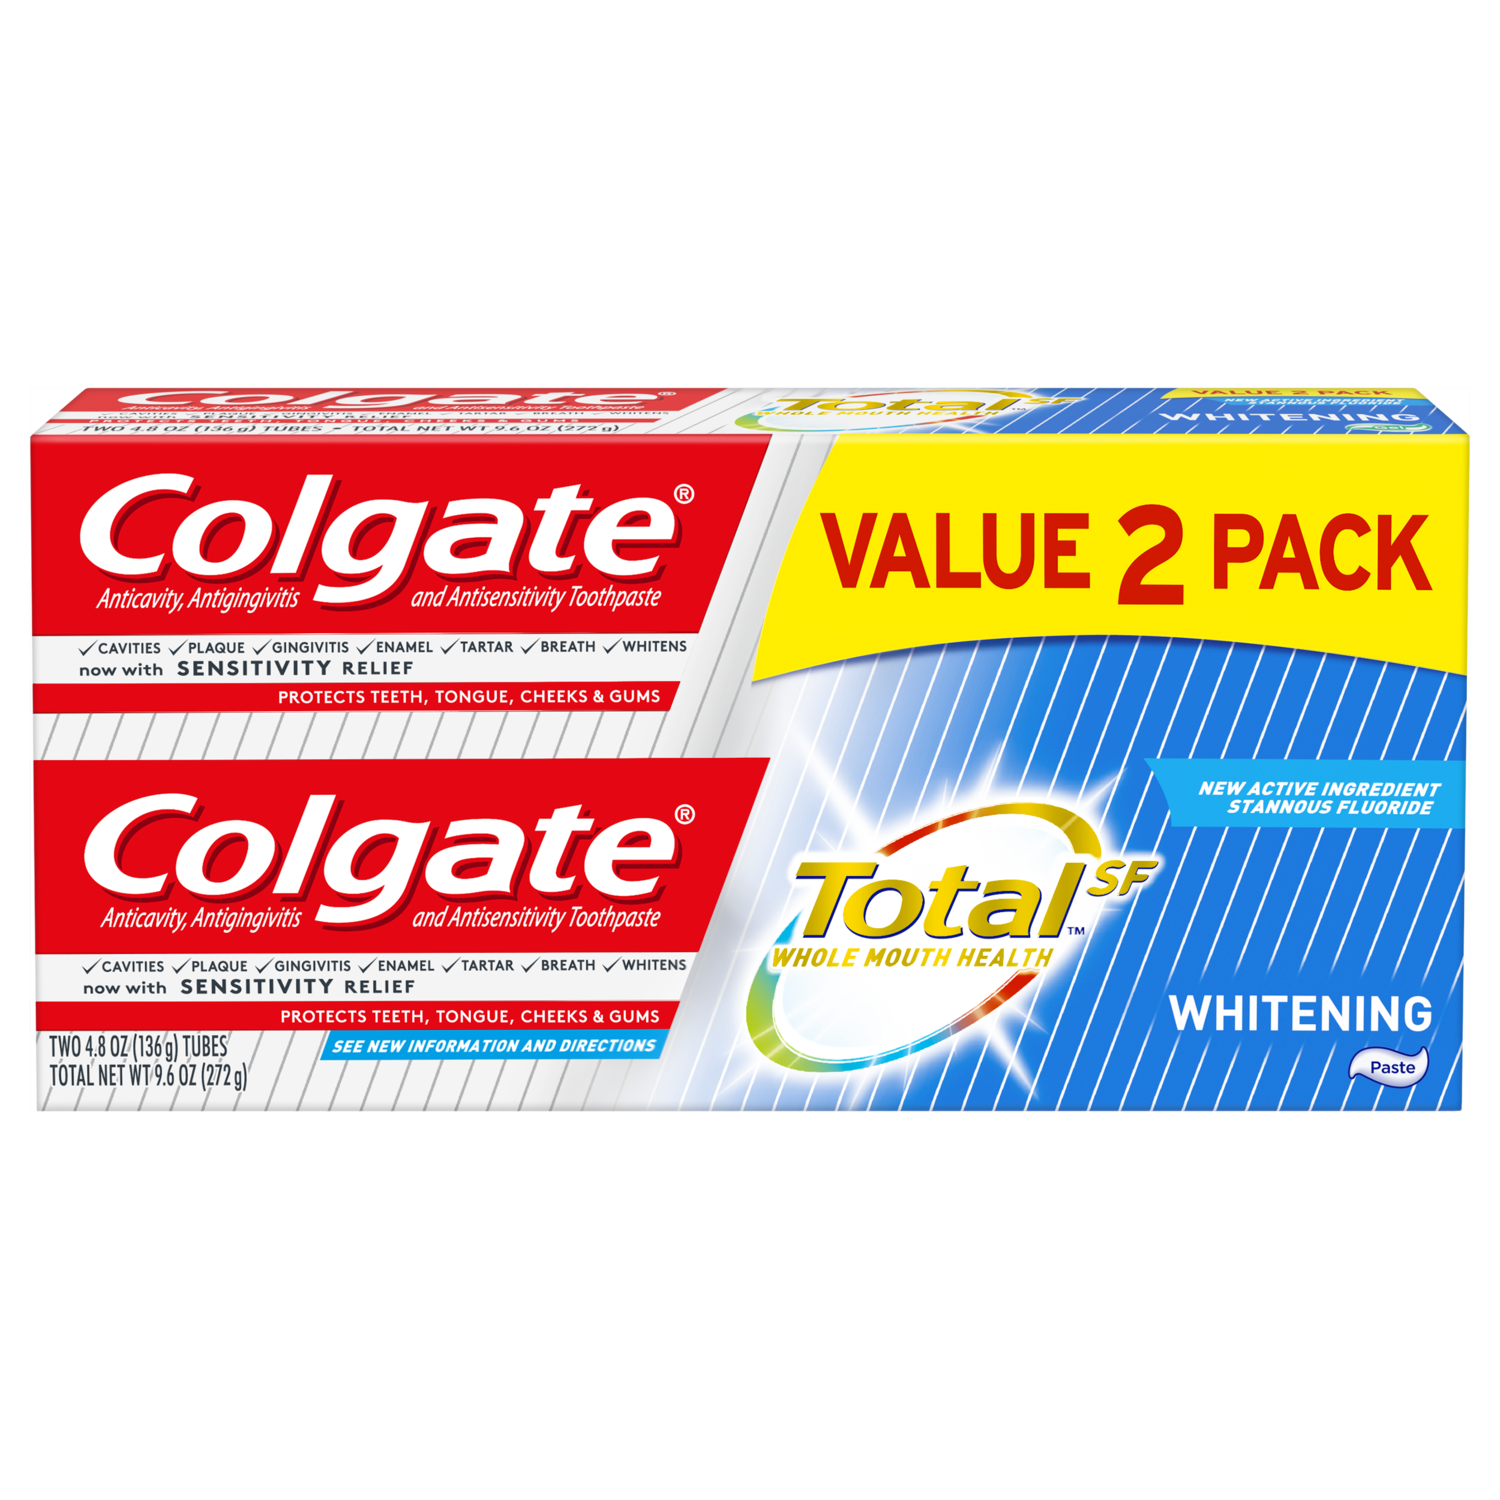 Colgate Total Whitening Toothpaste 4 8 Ounce 2 Pack Walmart